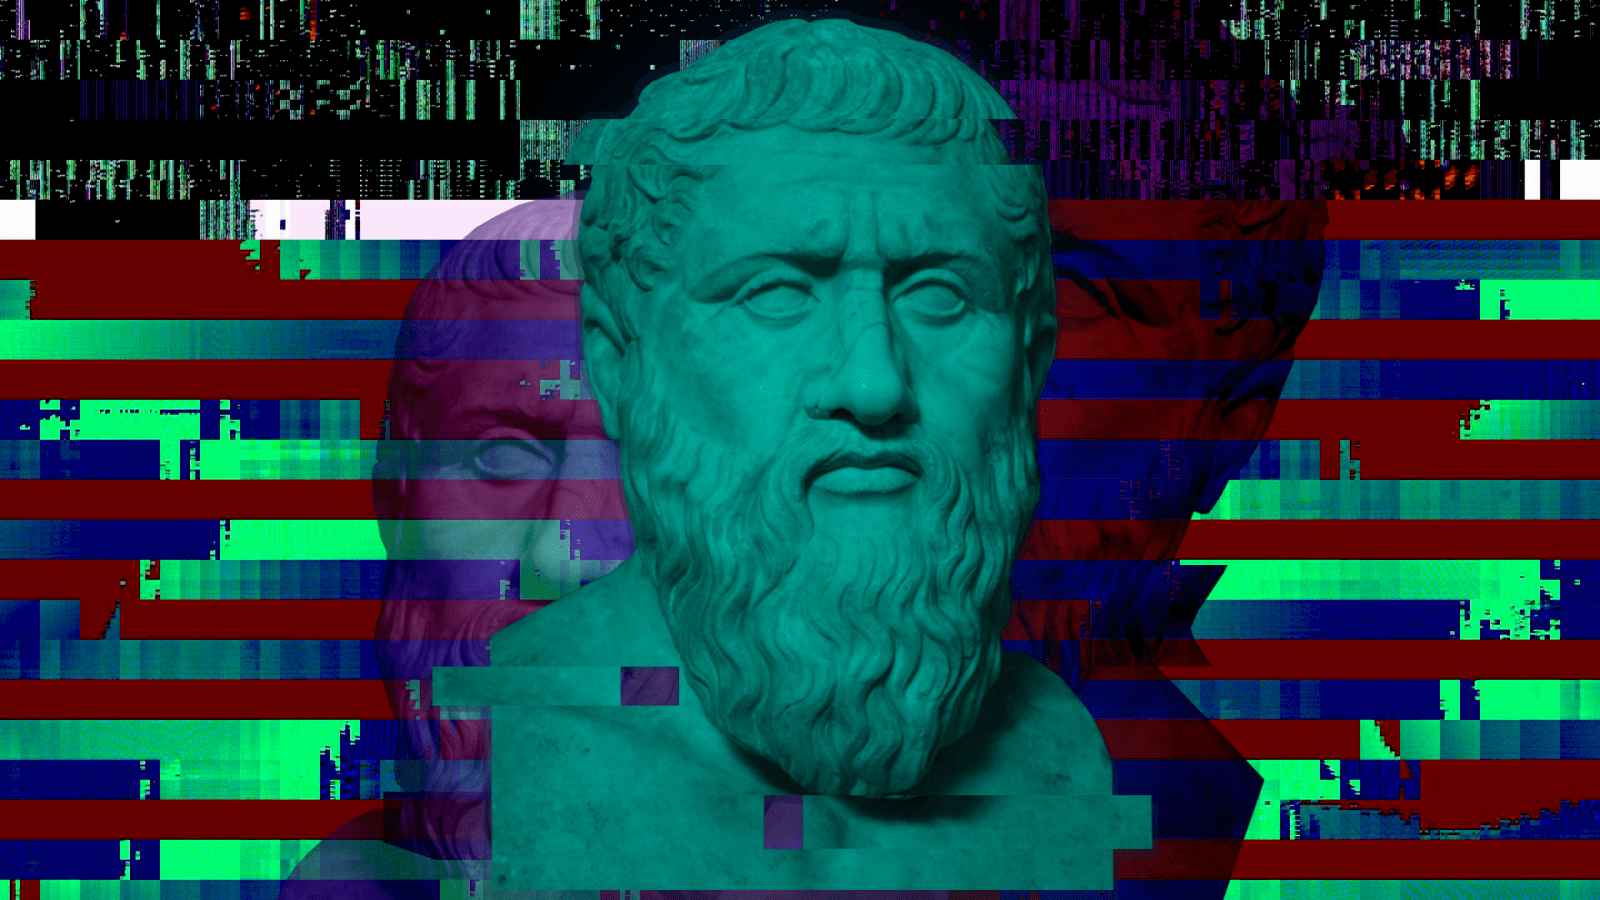 Wallpaper Greek Philosophers Plato Minimalism Glitch Art 1920x1080 Arsildo1 1225747